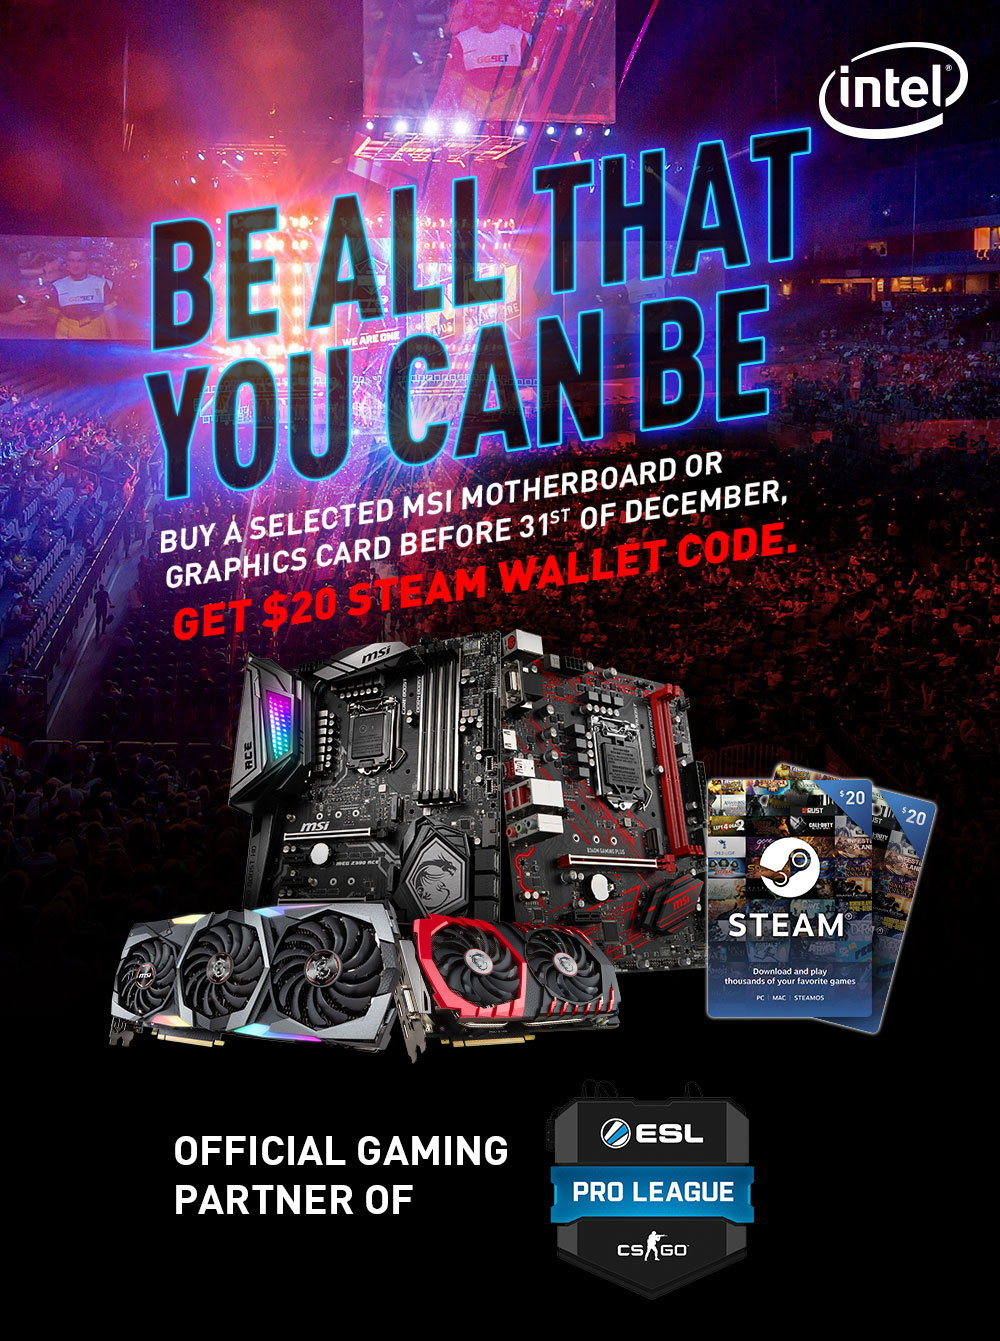 Be All That You Can With Msi X Esl Pro League Uk Steam Wallet Us 20 Buy A Selected Gaming Motherboard Or Graphics Cards During The Promotion Period And Get Code